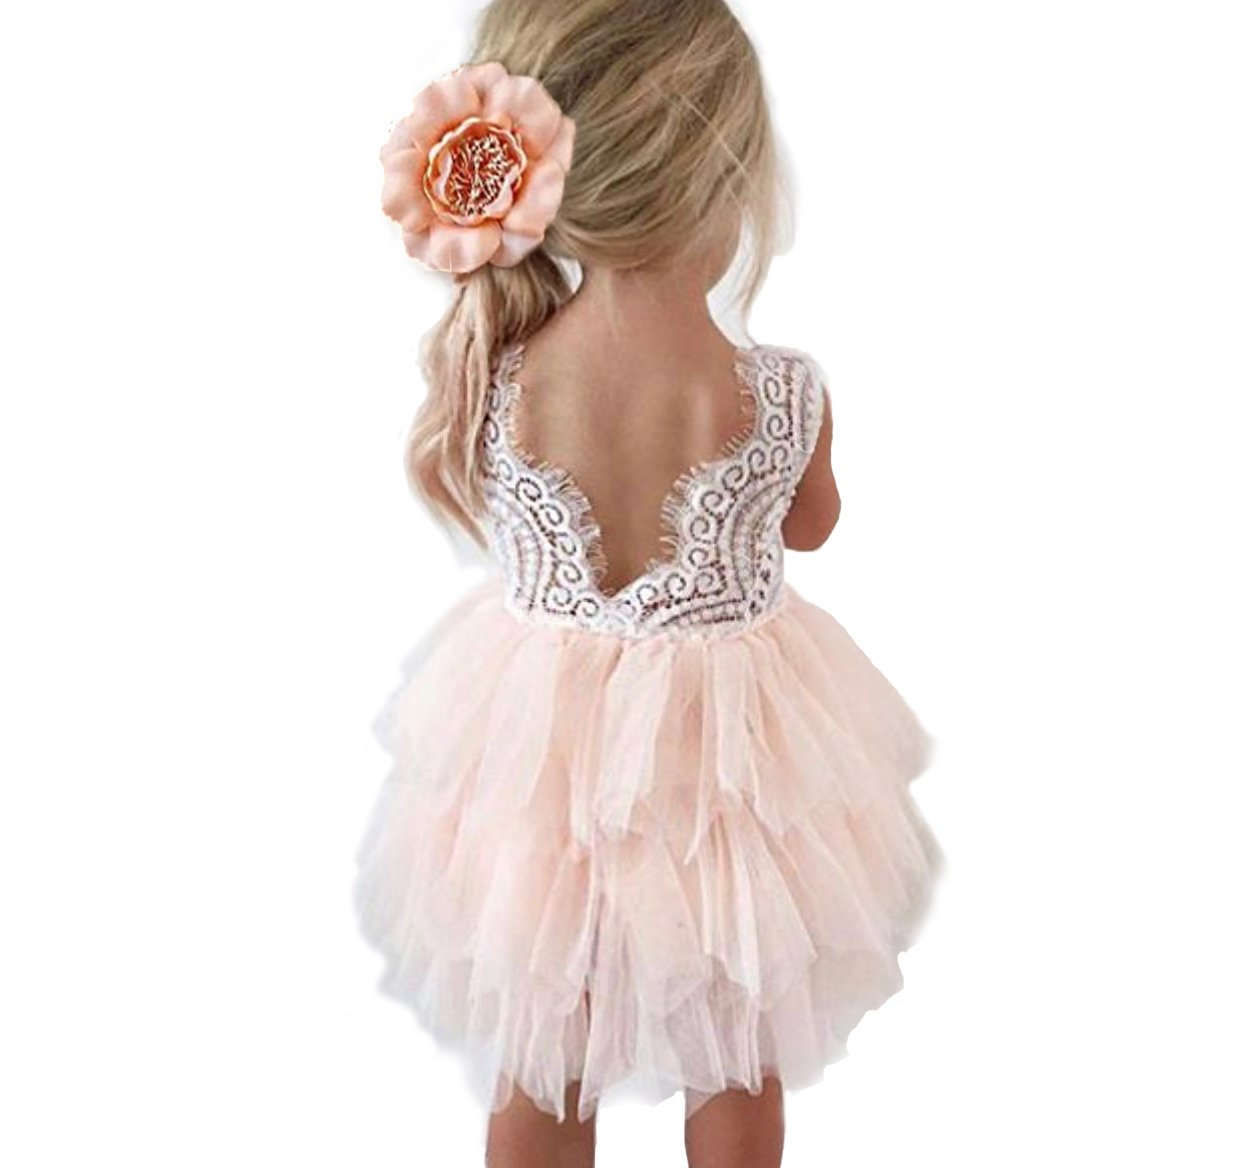 Backless A-line Lace Back Flower Girl Dress (5Y, Pink)